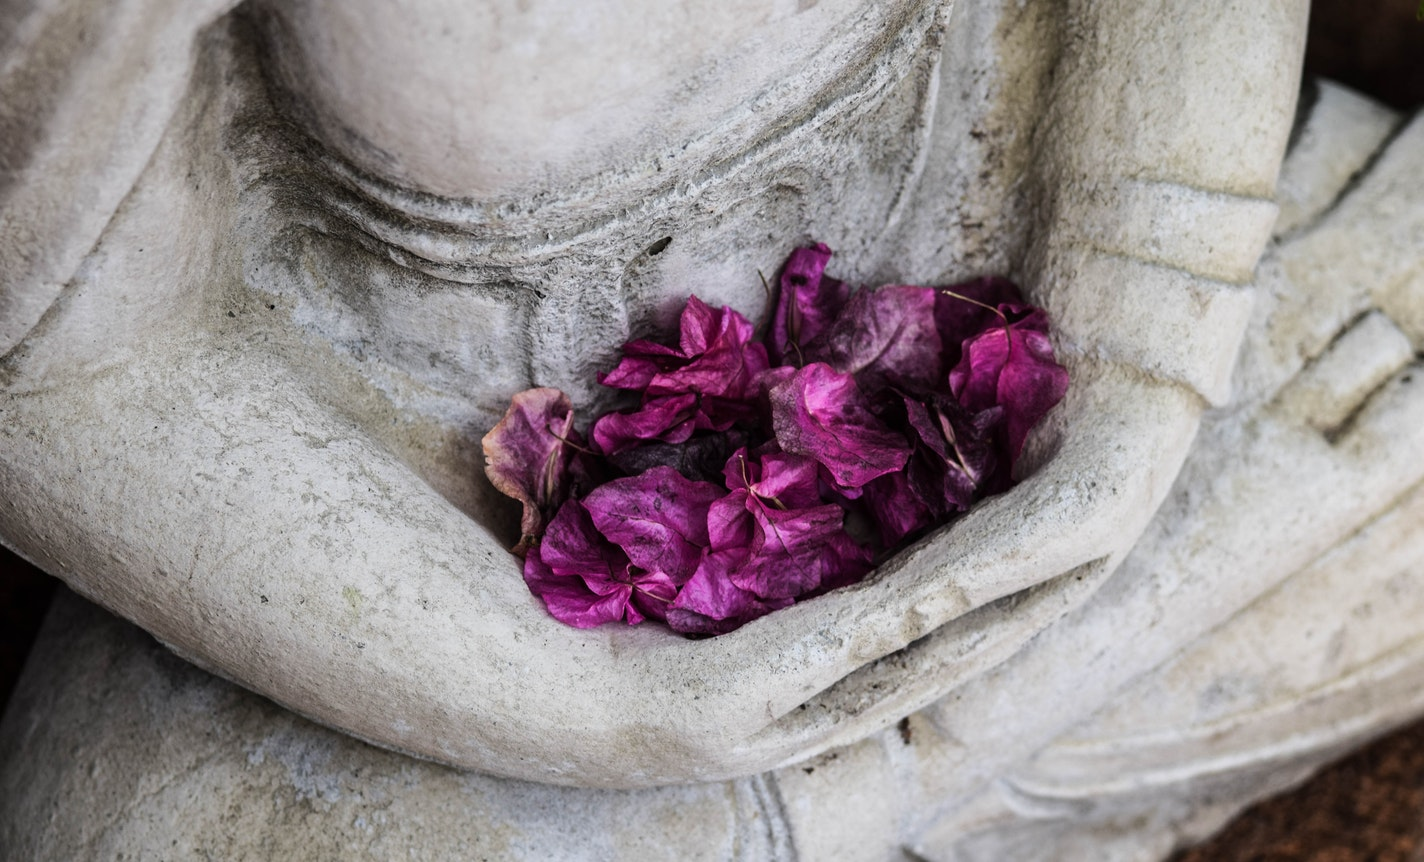 Metta Date: Opening to Grief